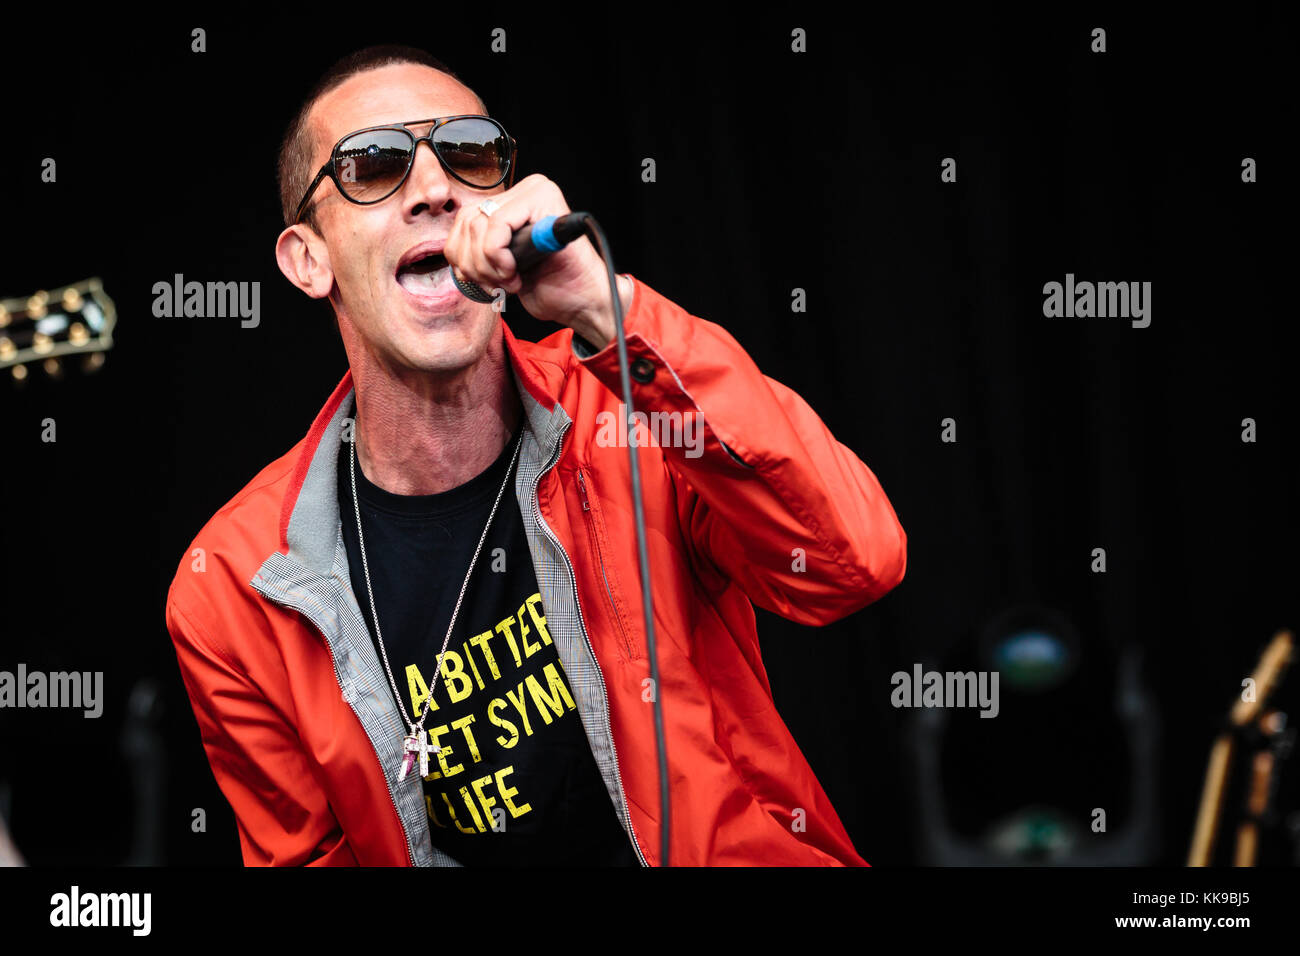 The English singer, songwriter and musician Richard Ashcroft performs a live concert during the Norwegian music Stock Photo